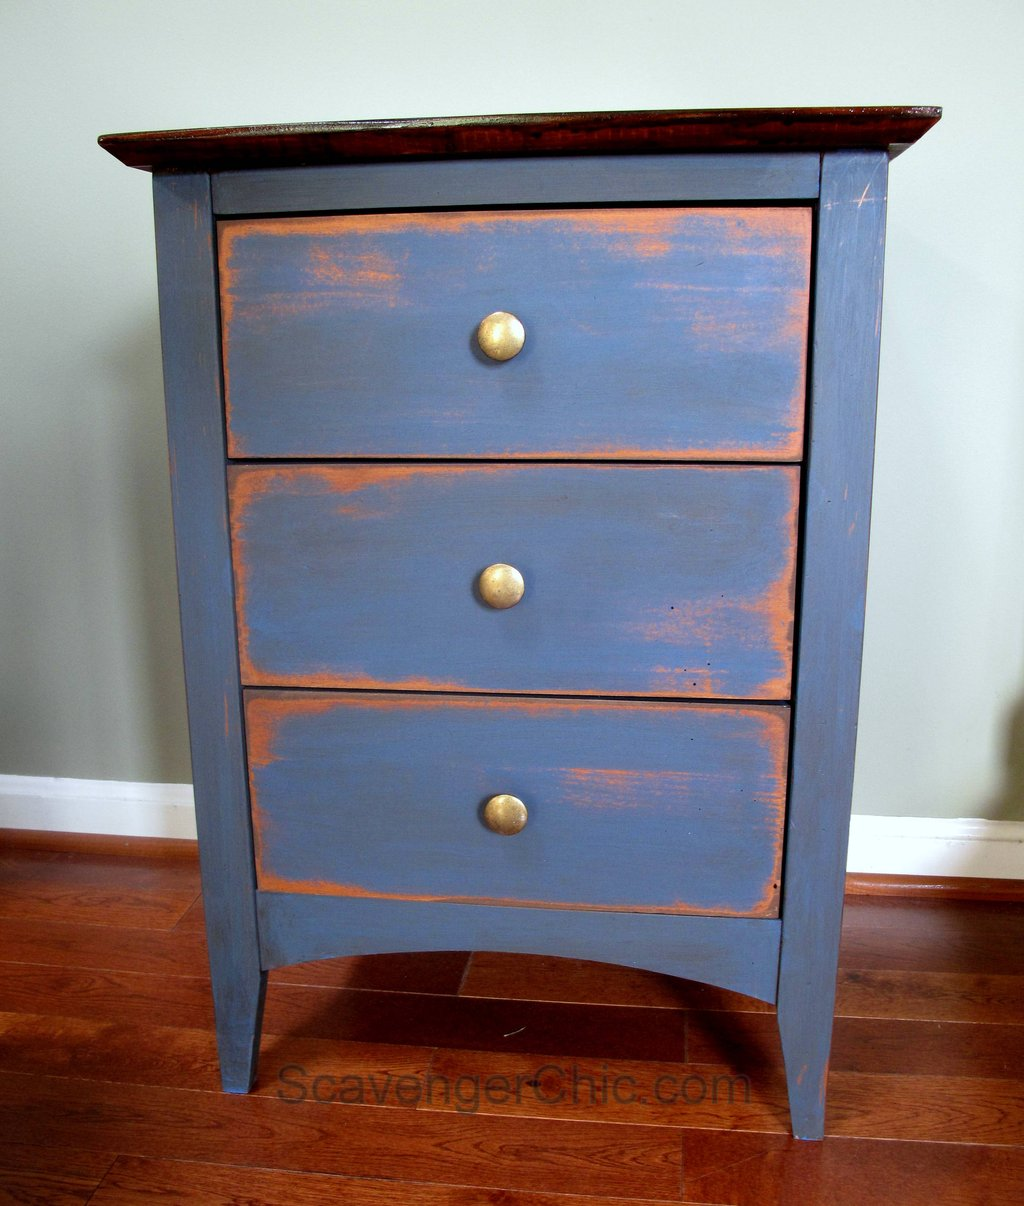 Blue Side Table Scavenger Chic How To Reclaimed Wood Side Table